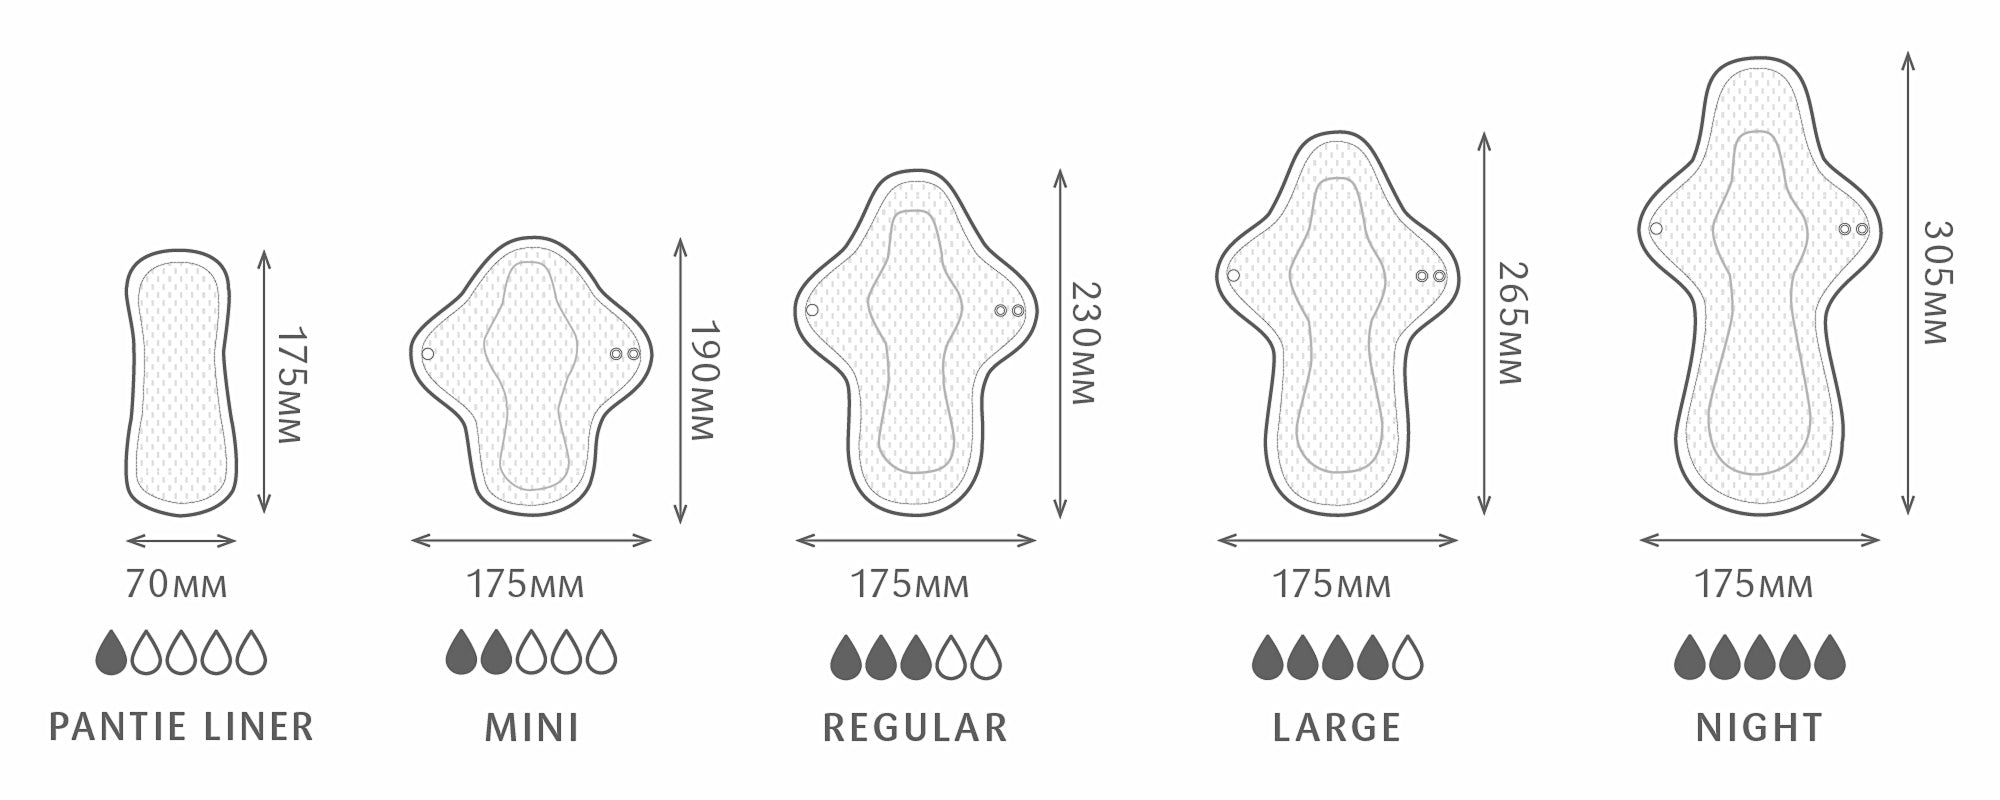 JuJu Cloth Pad Sizes